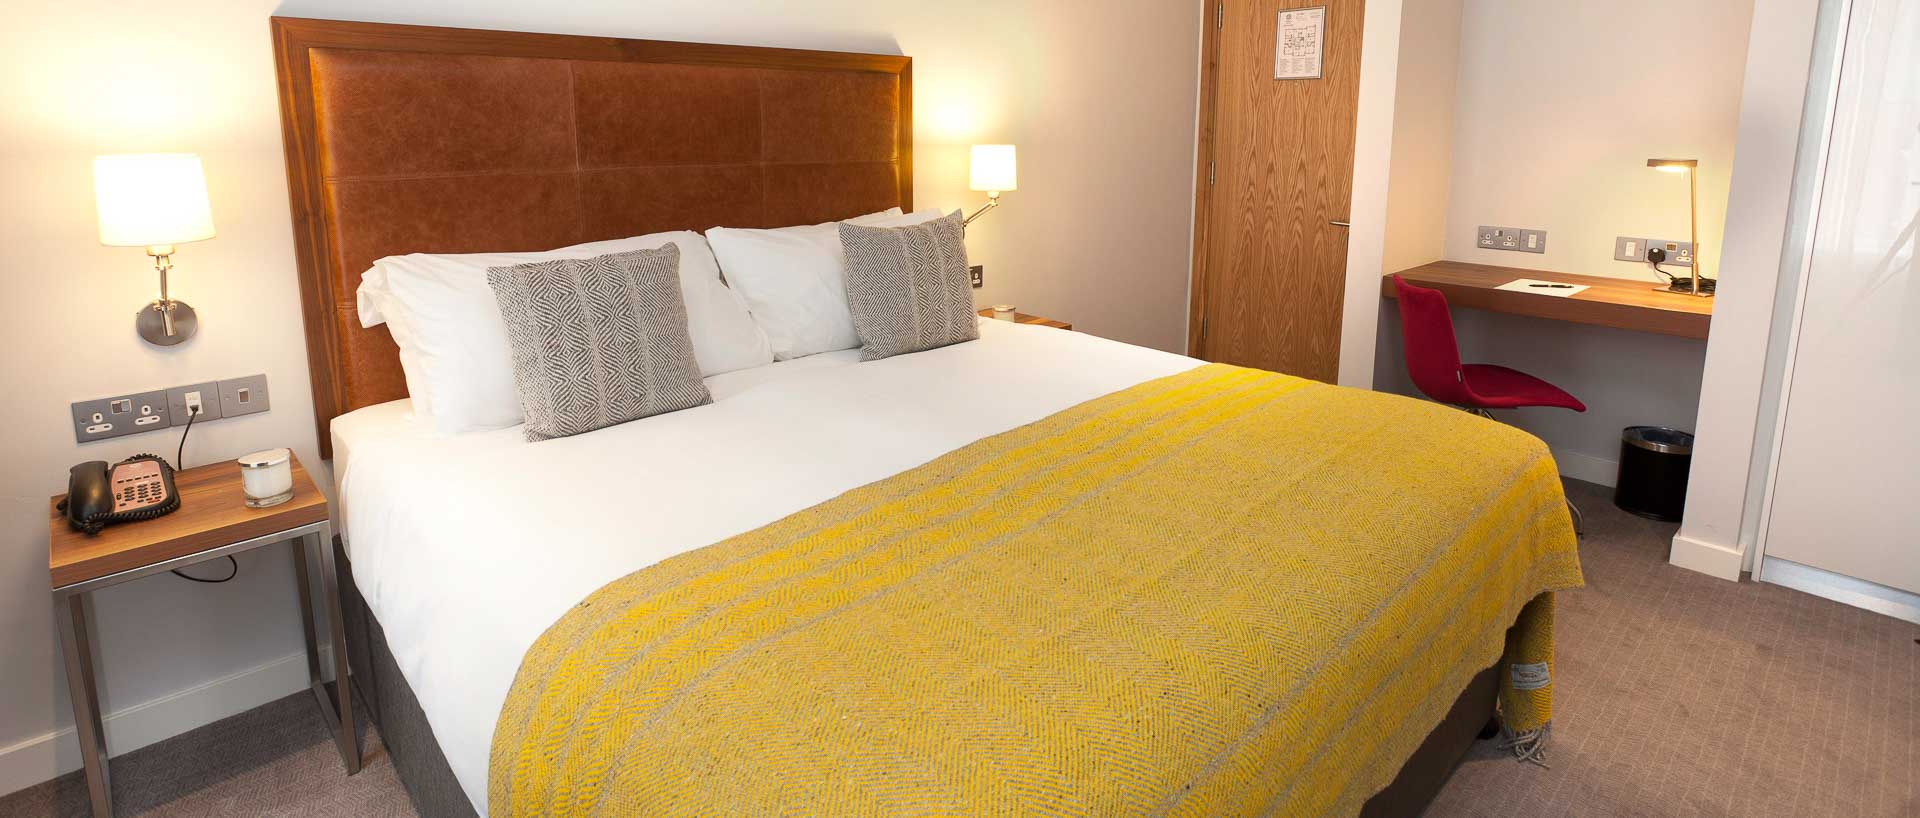 PREMIER SUITES Dublin Ballsbridge executive double room